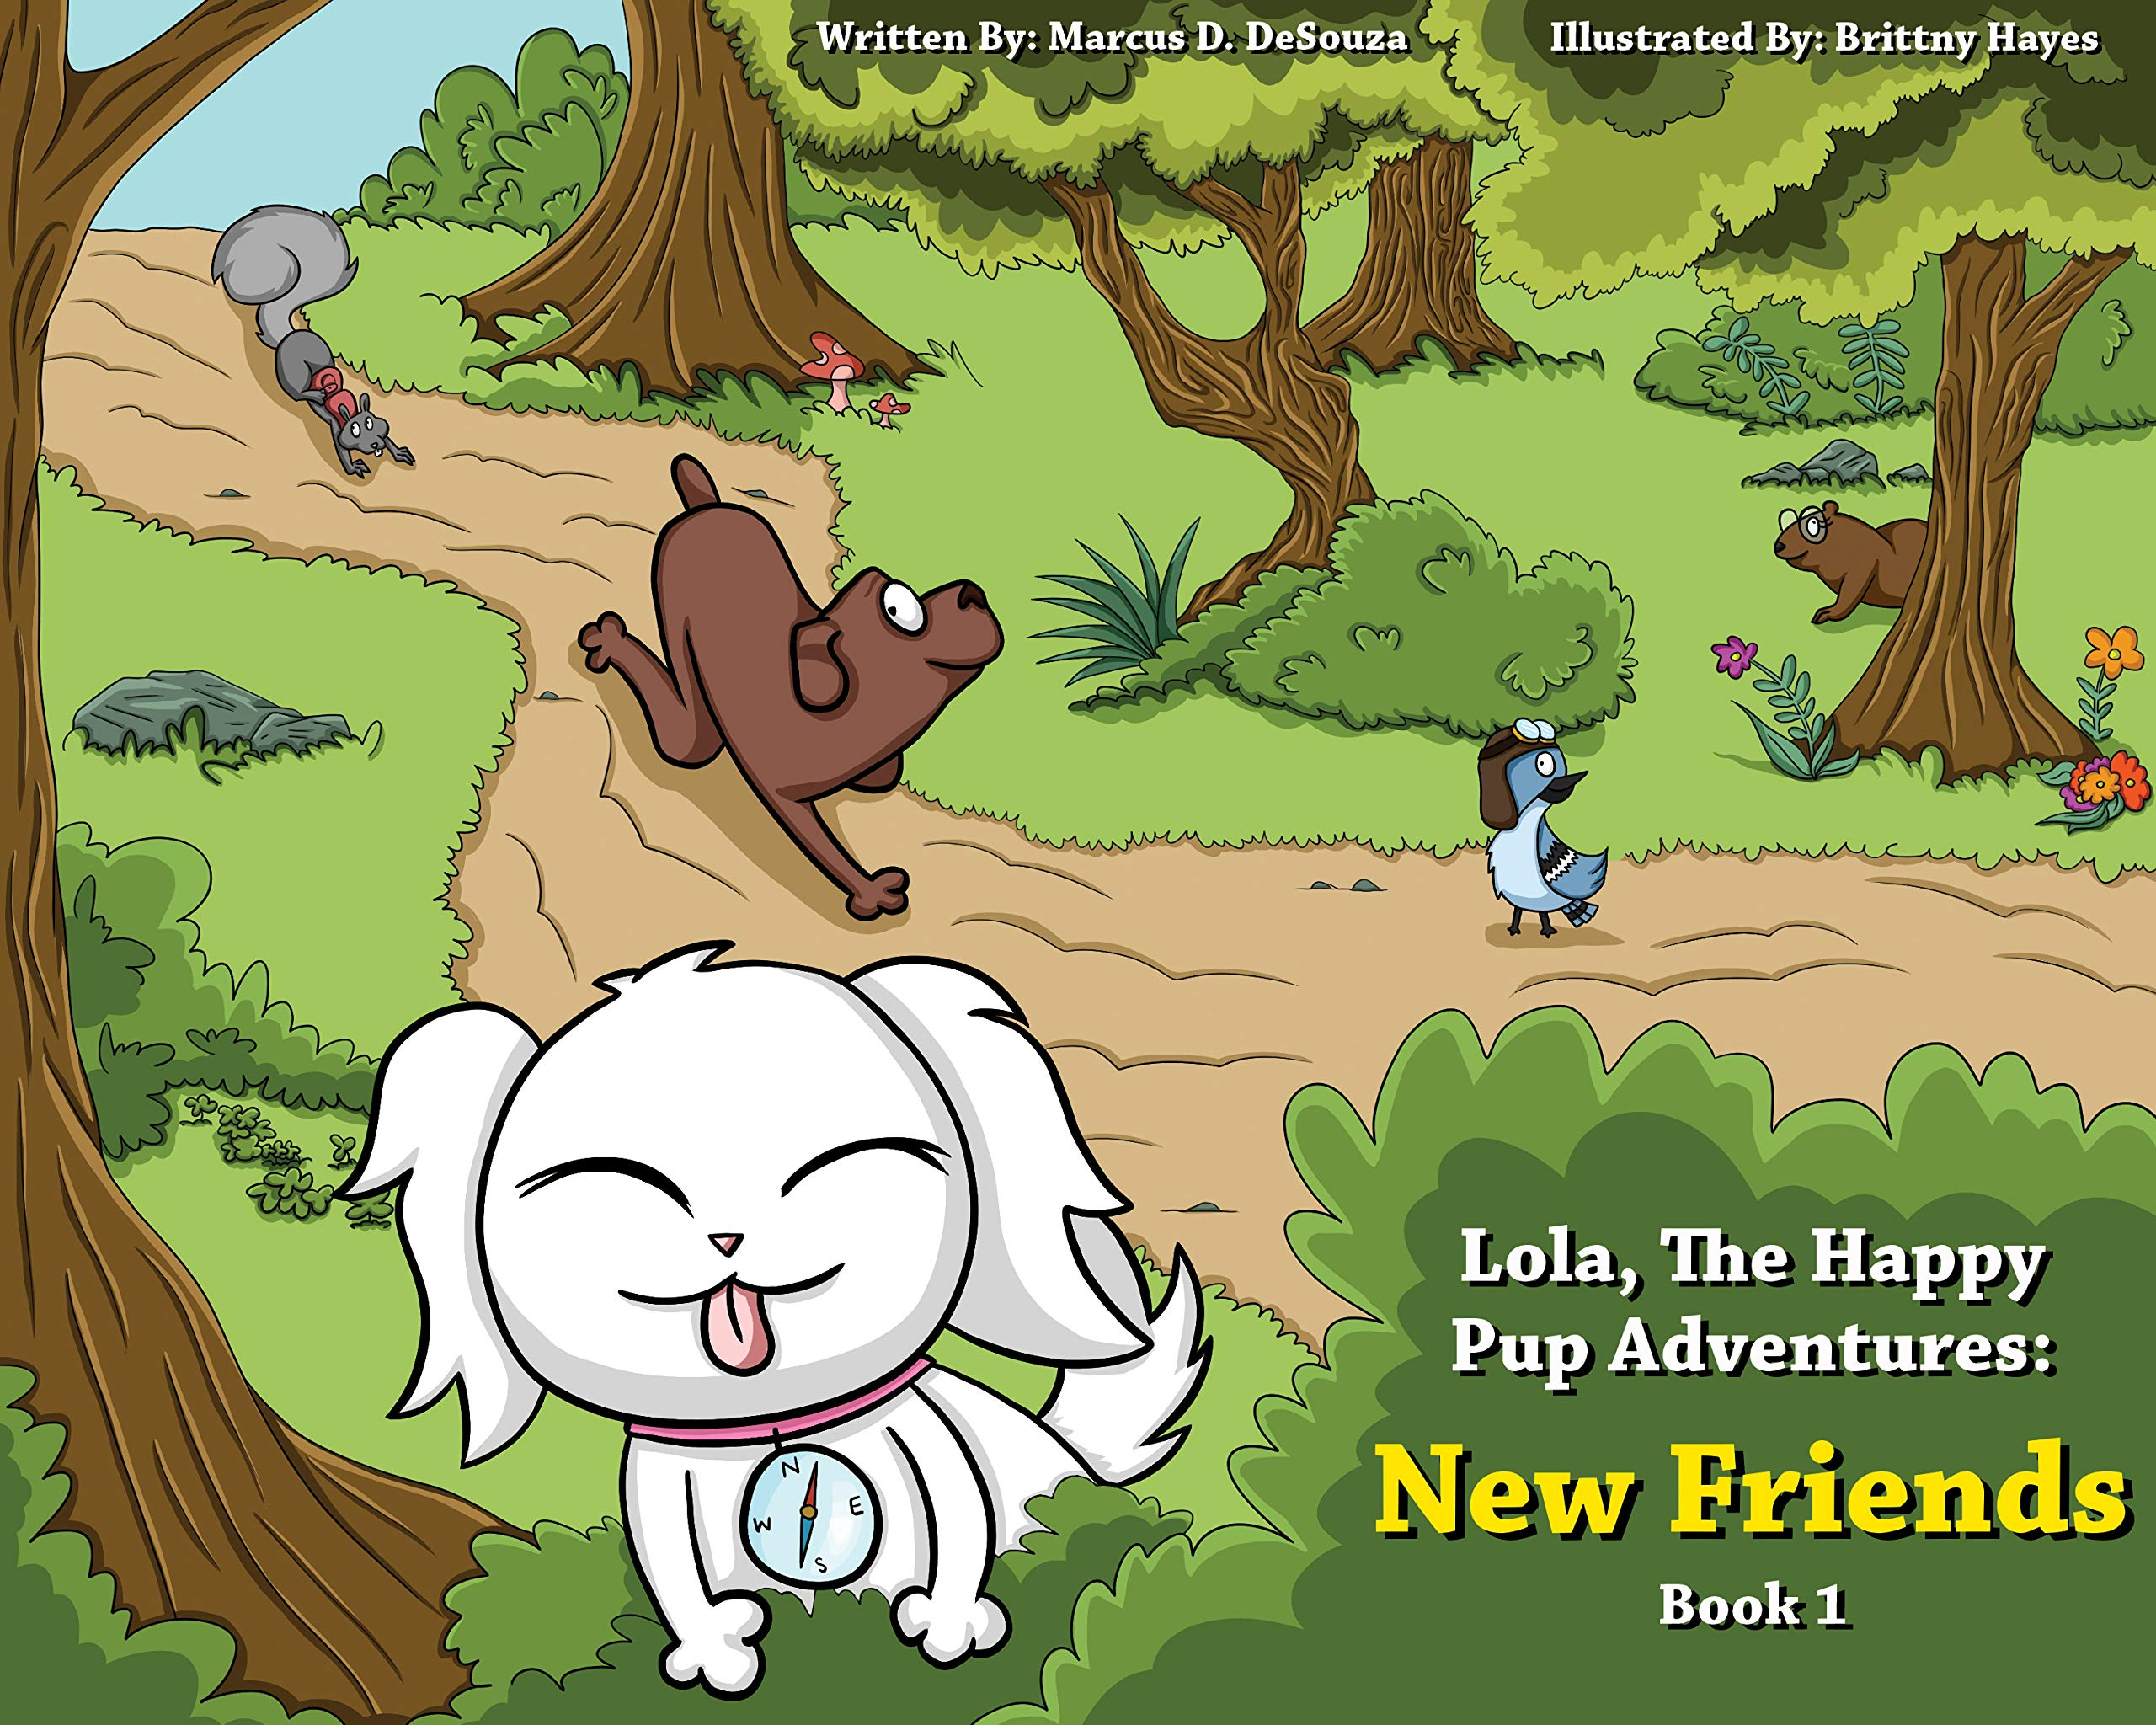 Lola, The Happy Pup Adventures- Book 1: Popular kids adventure book series. Great for children ages 3-9 Also makes a fantastic bedtime story!